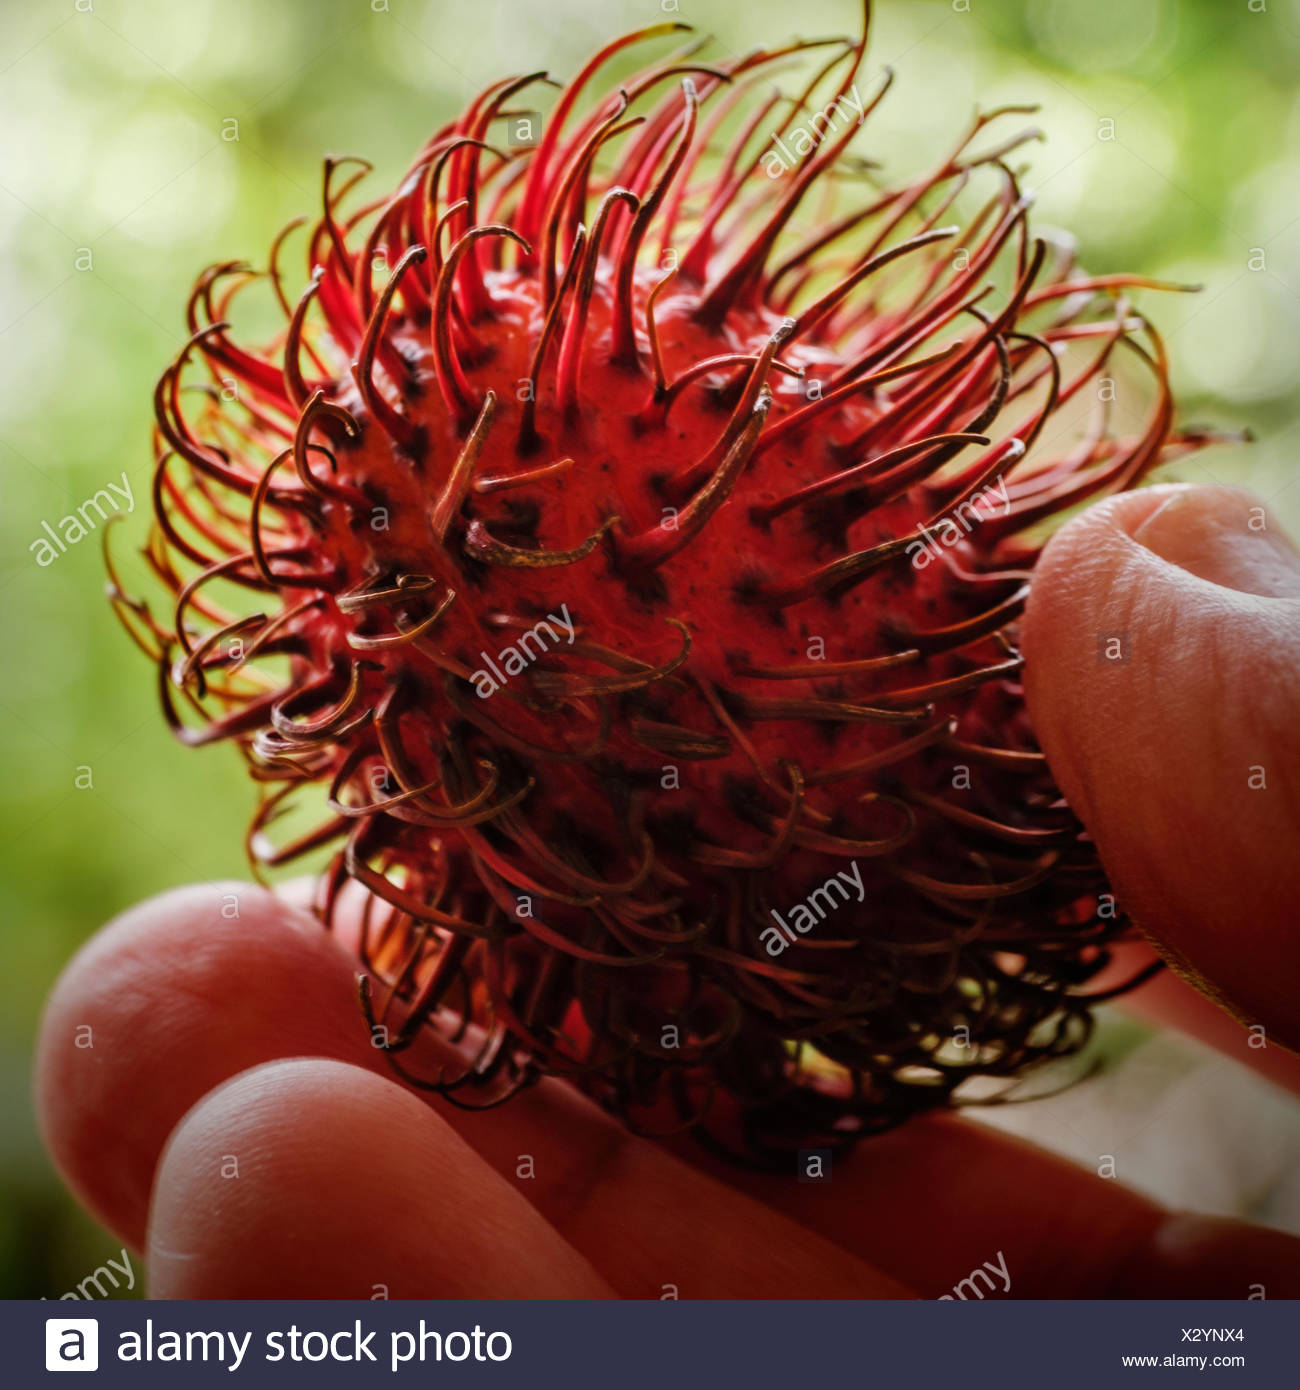 Person holding lychee in spiked shell - Stock Image